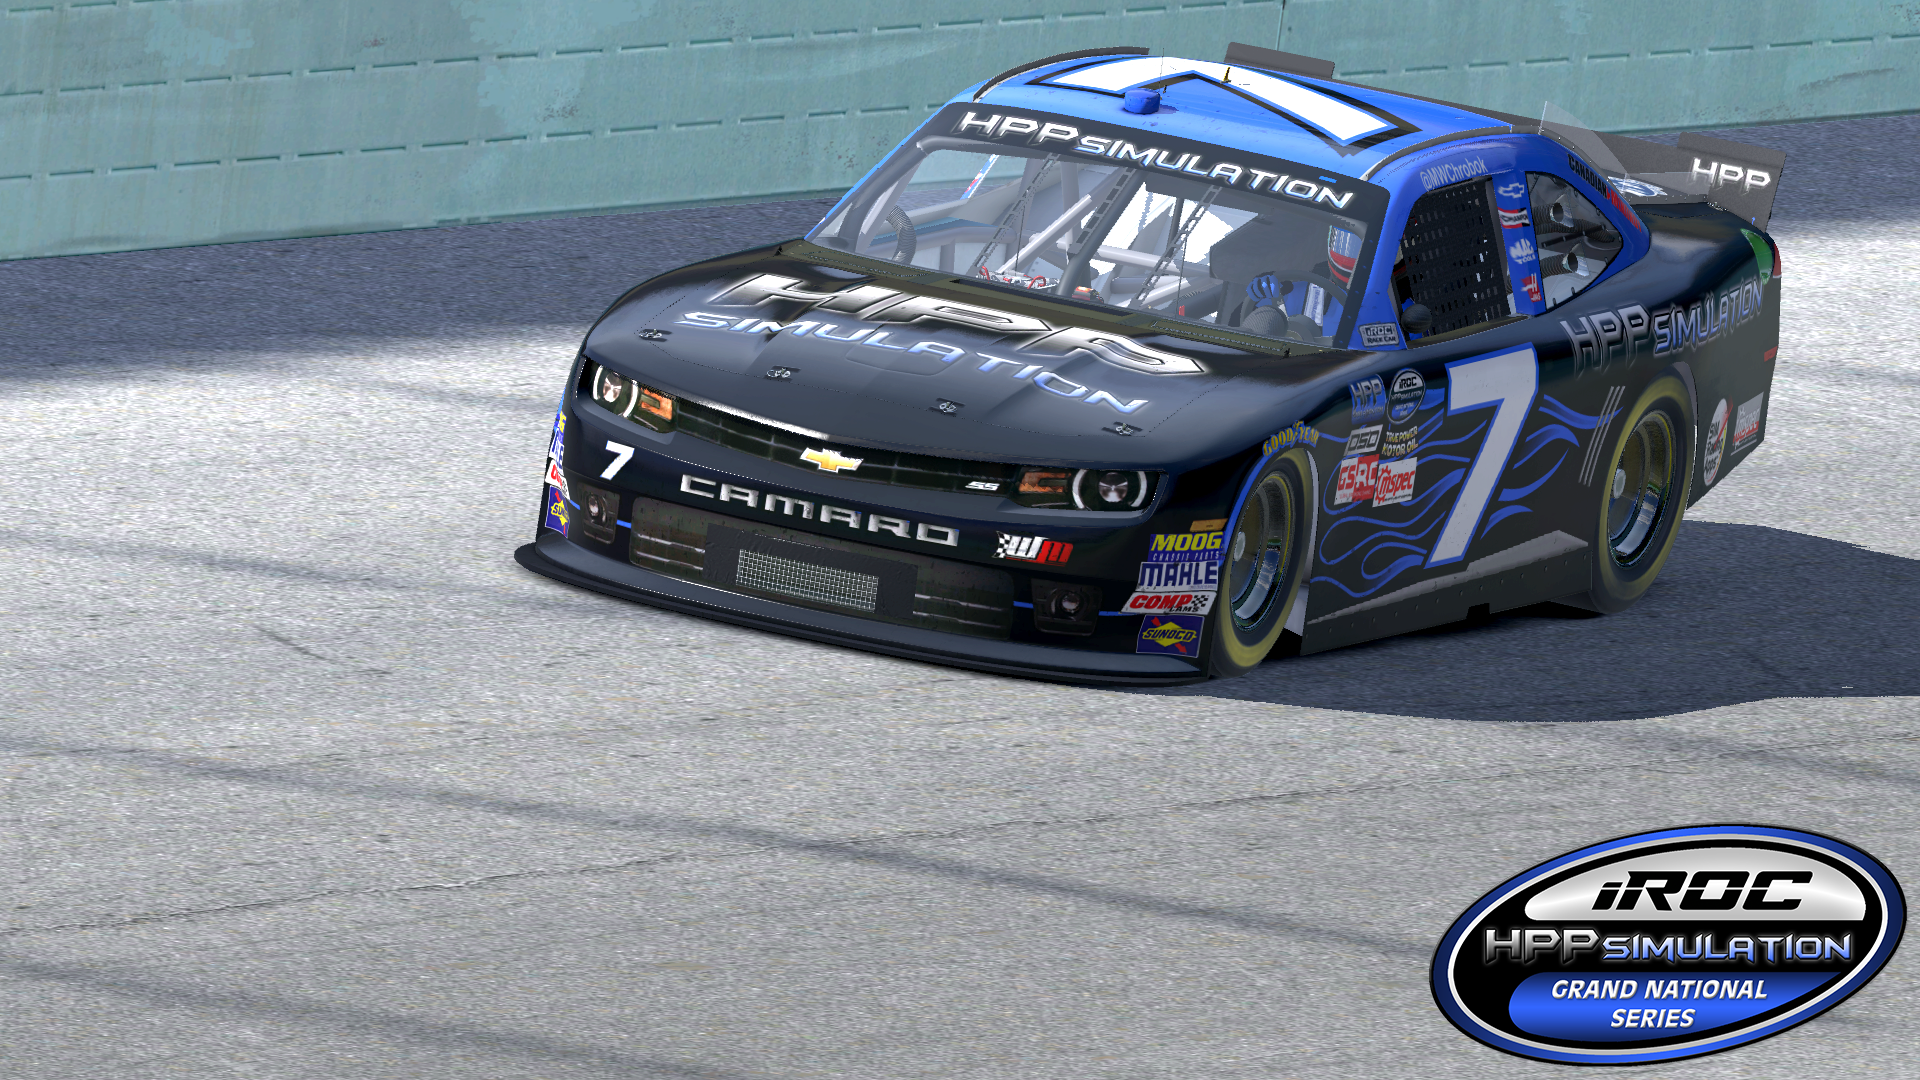 hpp simulation series storms into homestead chrobok leaves miami. Cars Review. Best American Auto & Cars Review